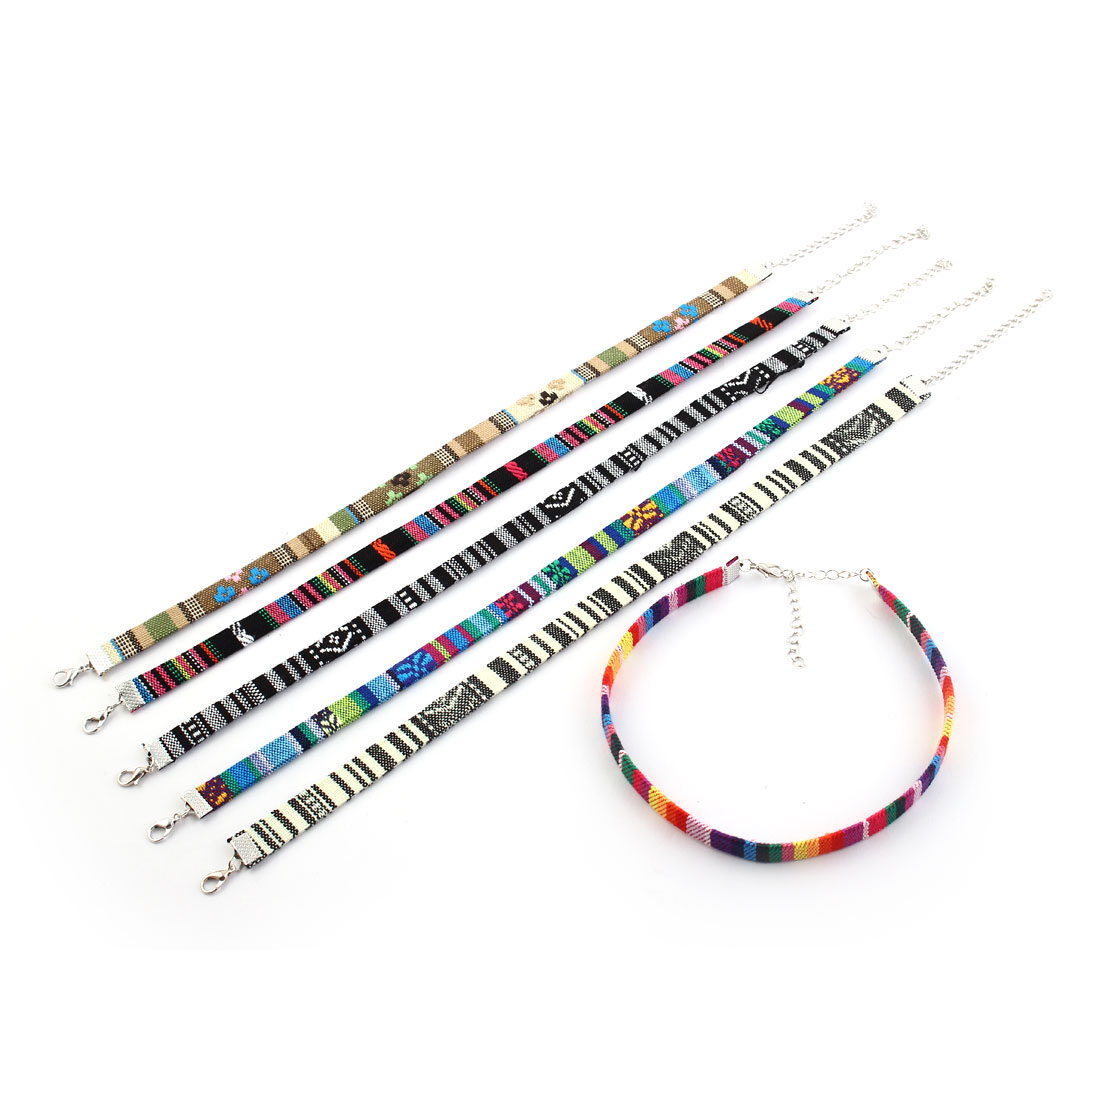 Ethnic Style Adjustable Fabric Embrodered Neck Decoration Clavicle Necklace Chain Collar Choker Multicolor 6 PCS